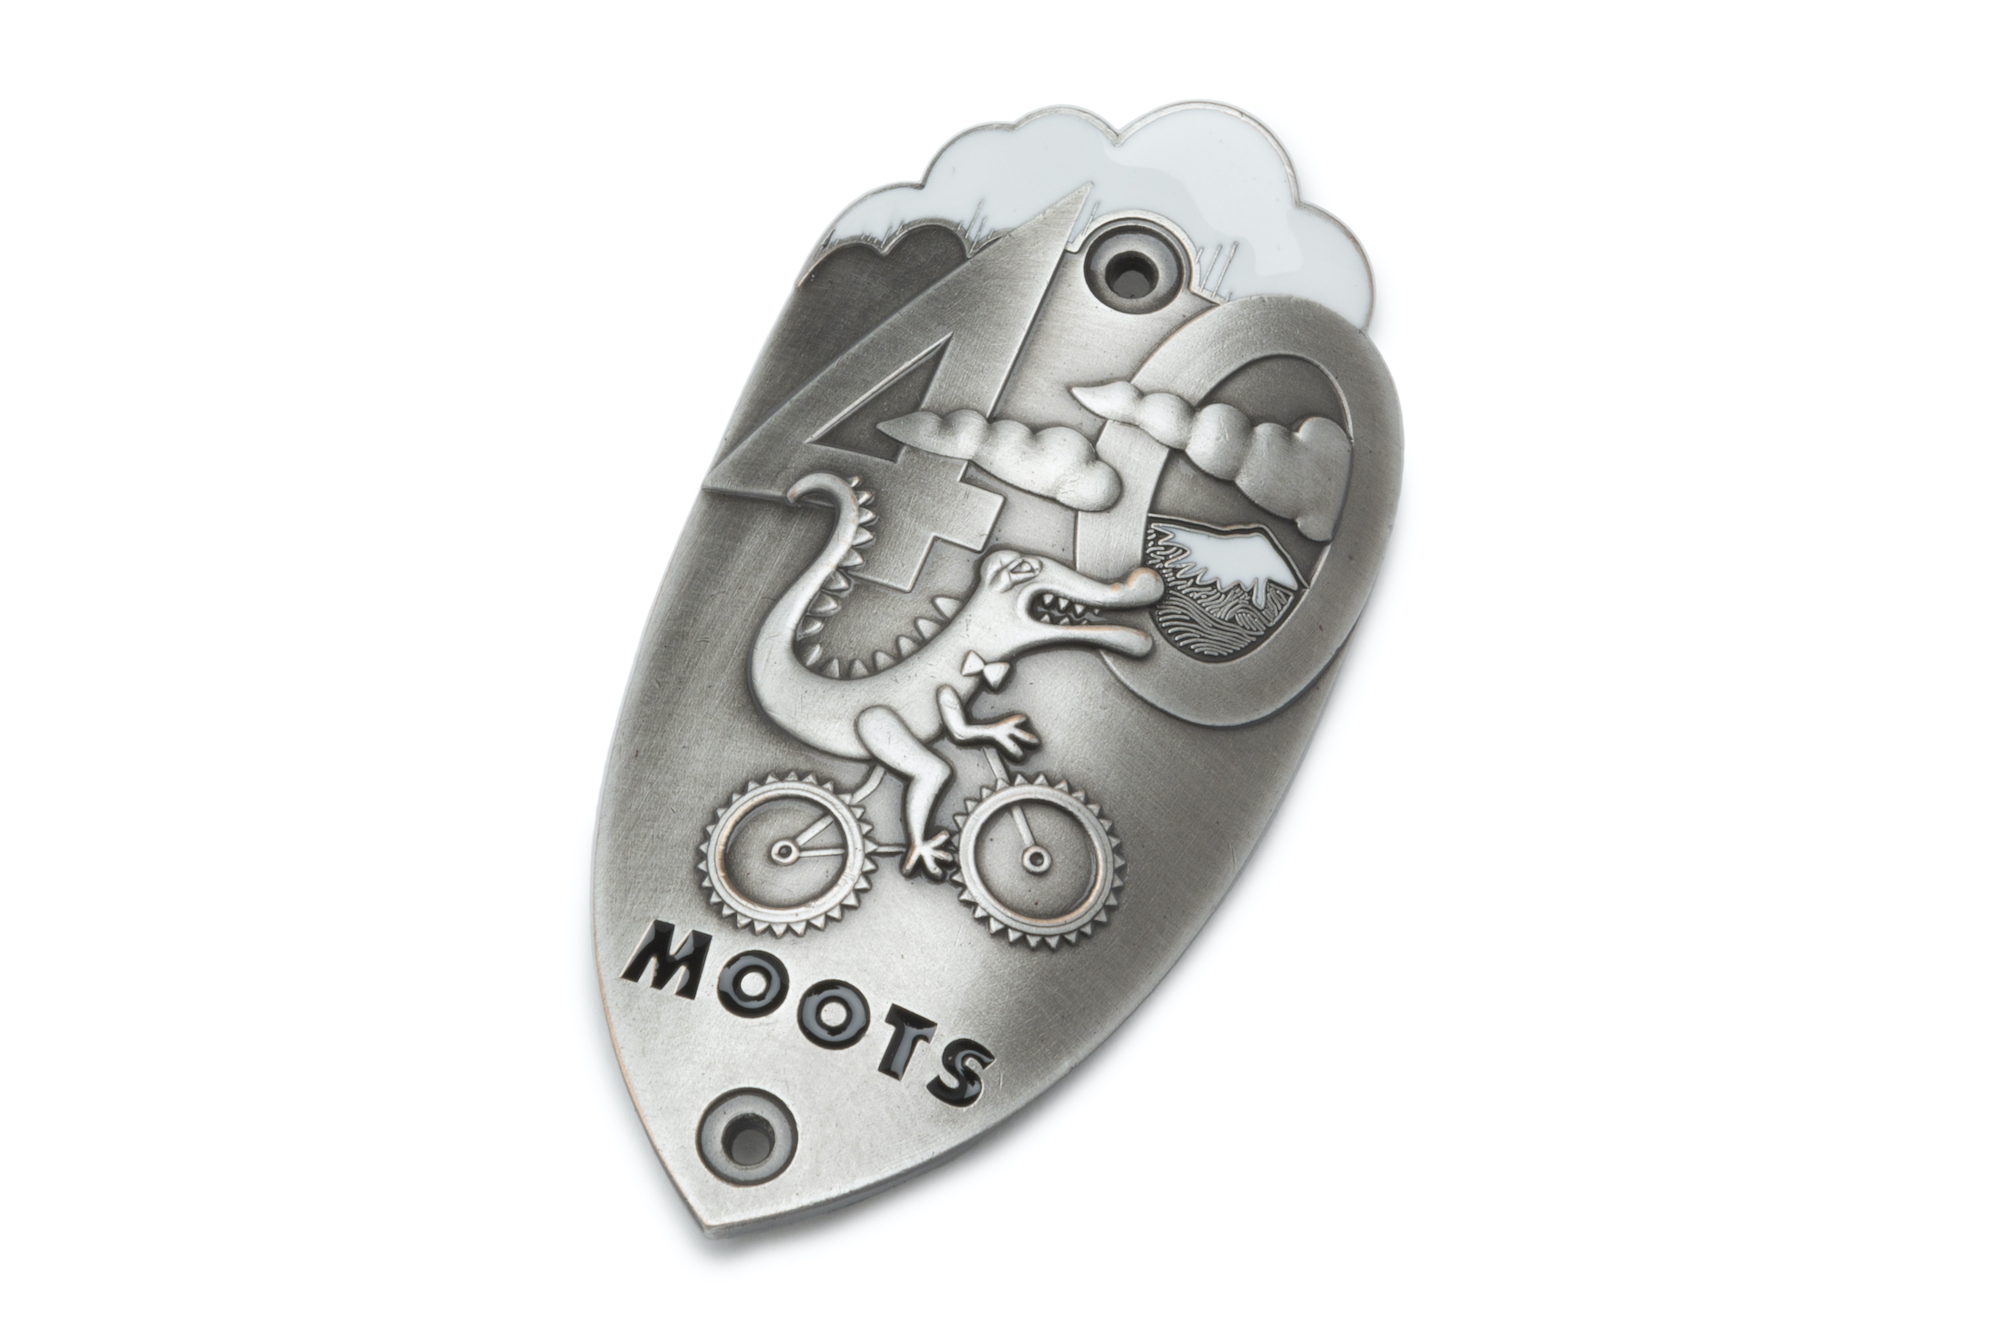 moots limited edition head badge 40th anniversary celebration